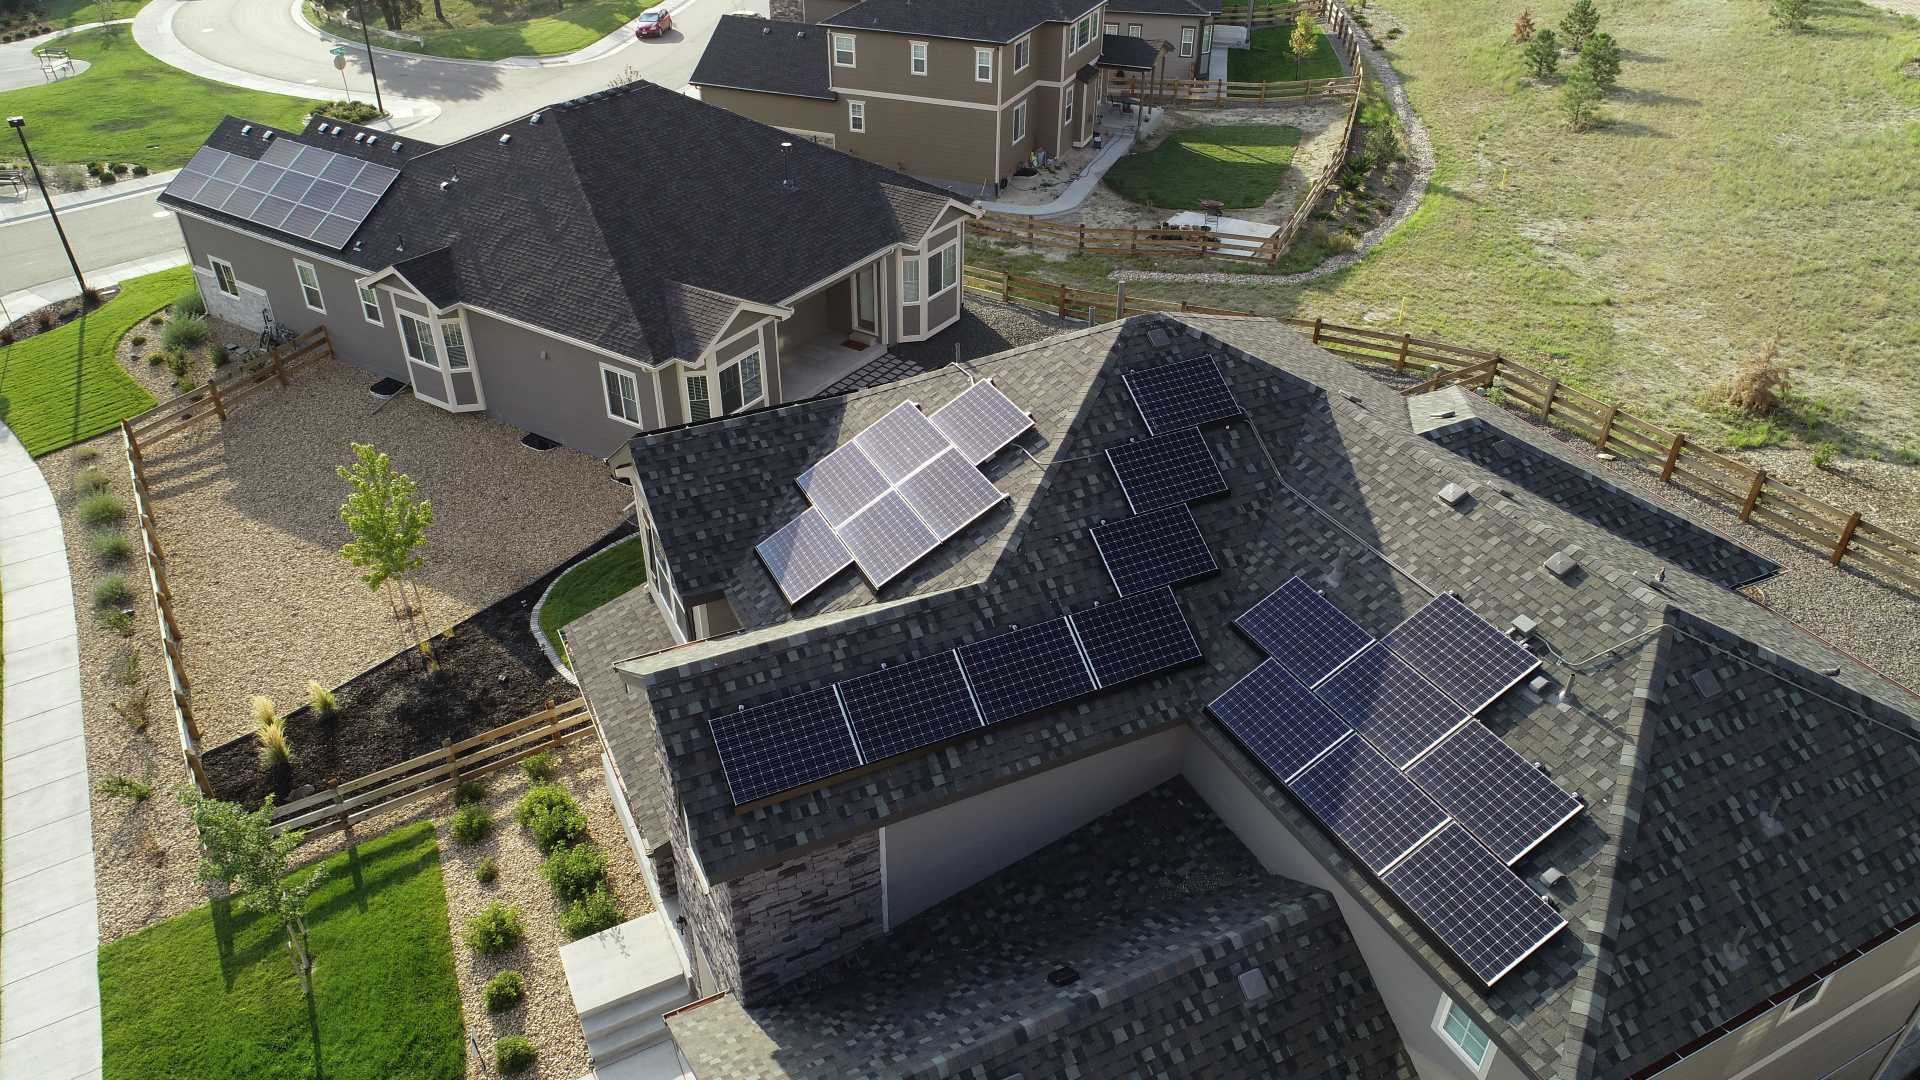 Multiple houses with solar panels on the roof, installed after getting solar energy quotes.